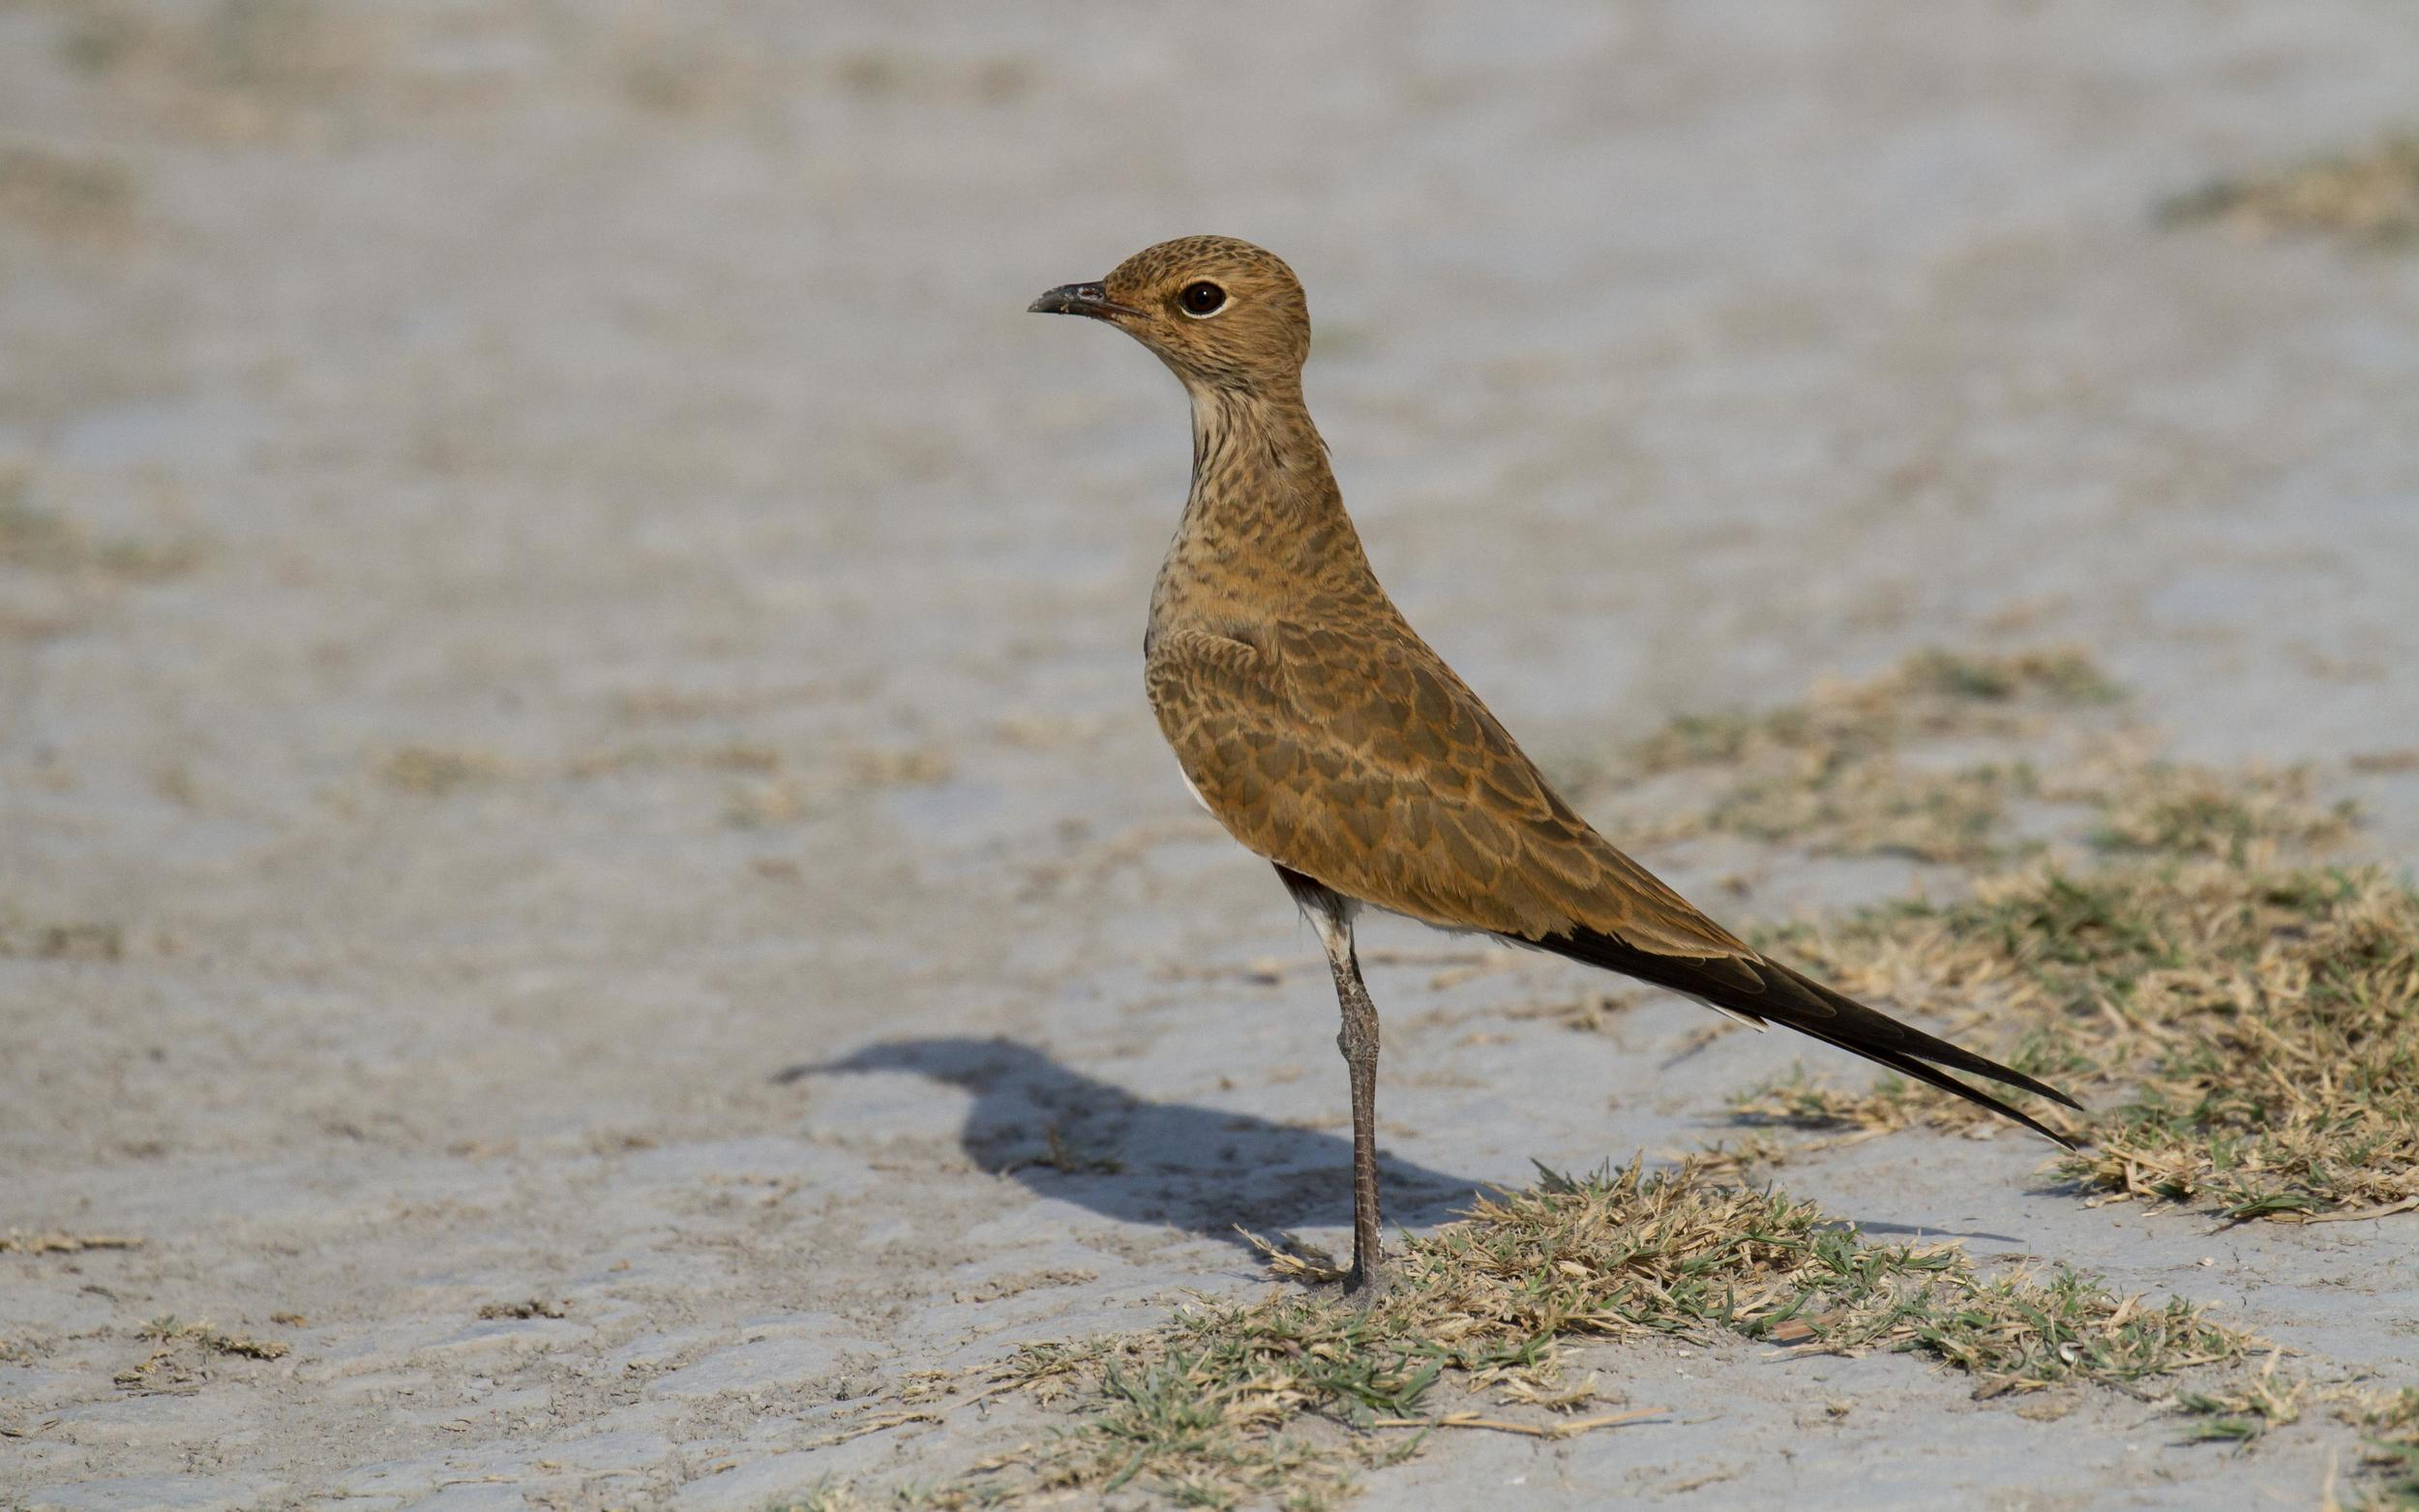 Just about every single one of the Australian Pratincoles on the plains was a juvenile. Photo: Ric Else